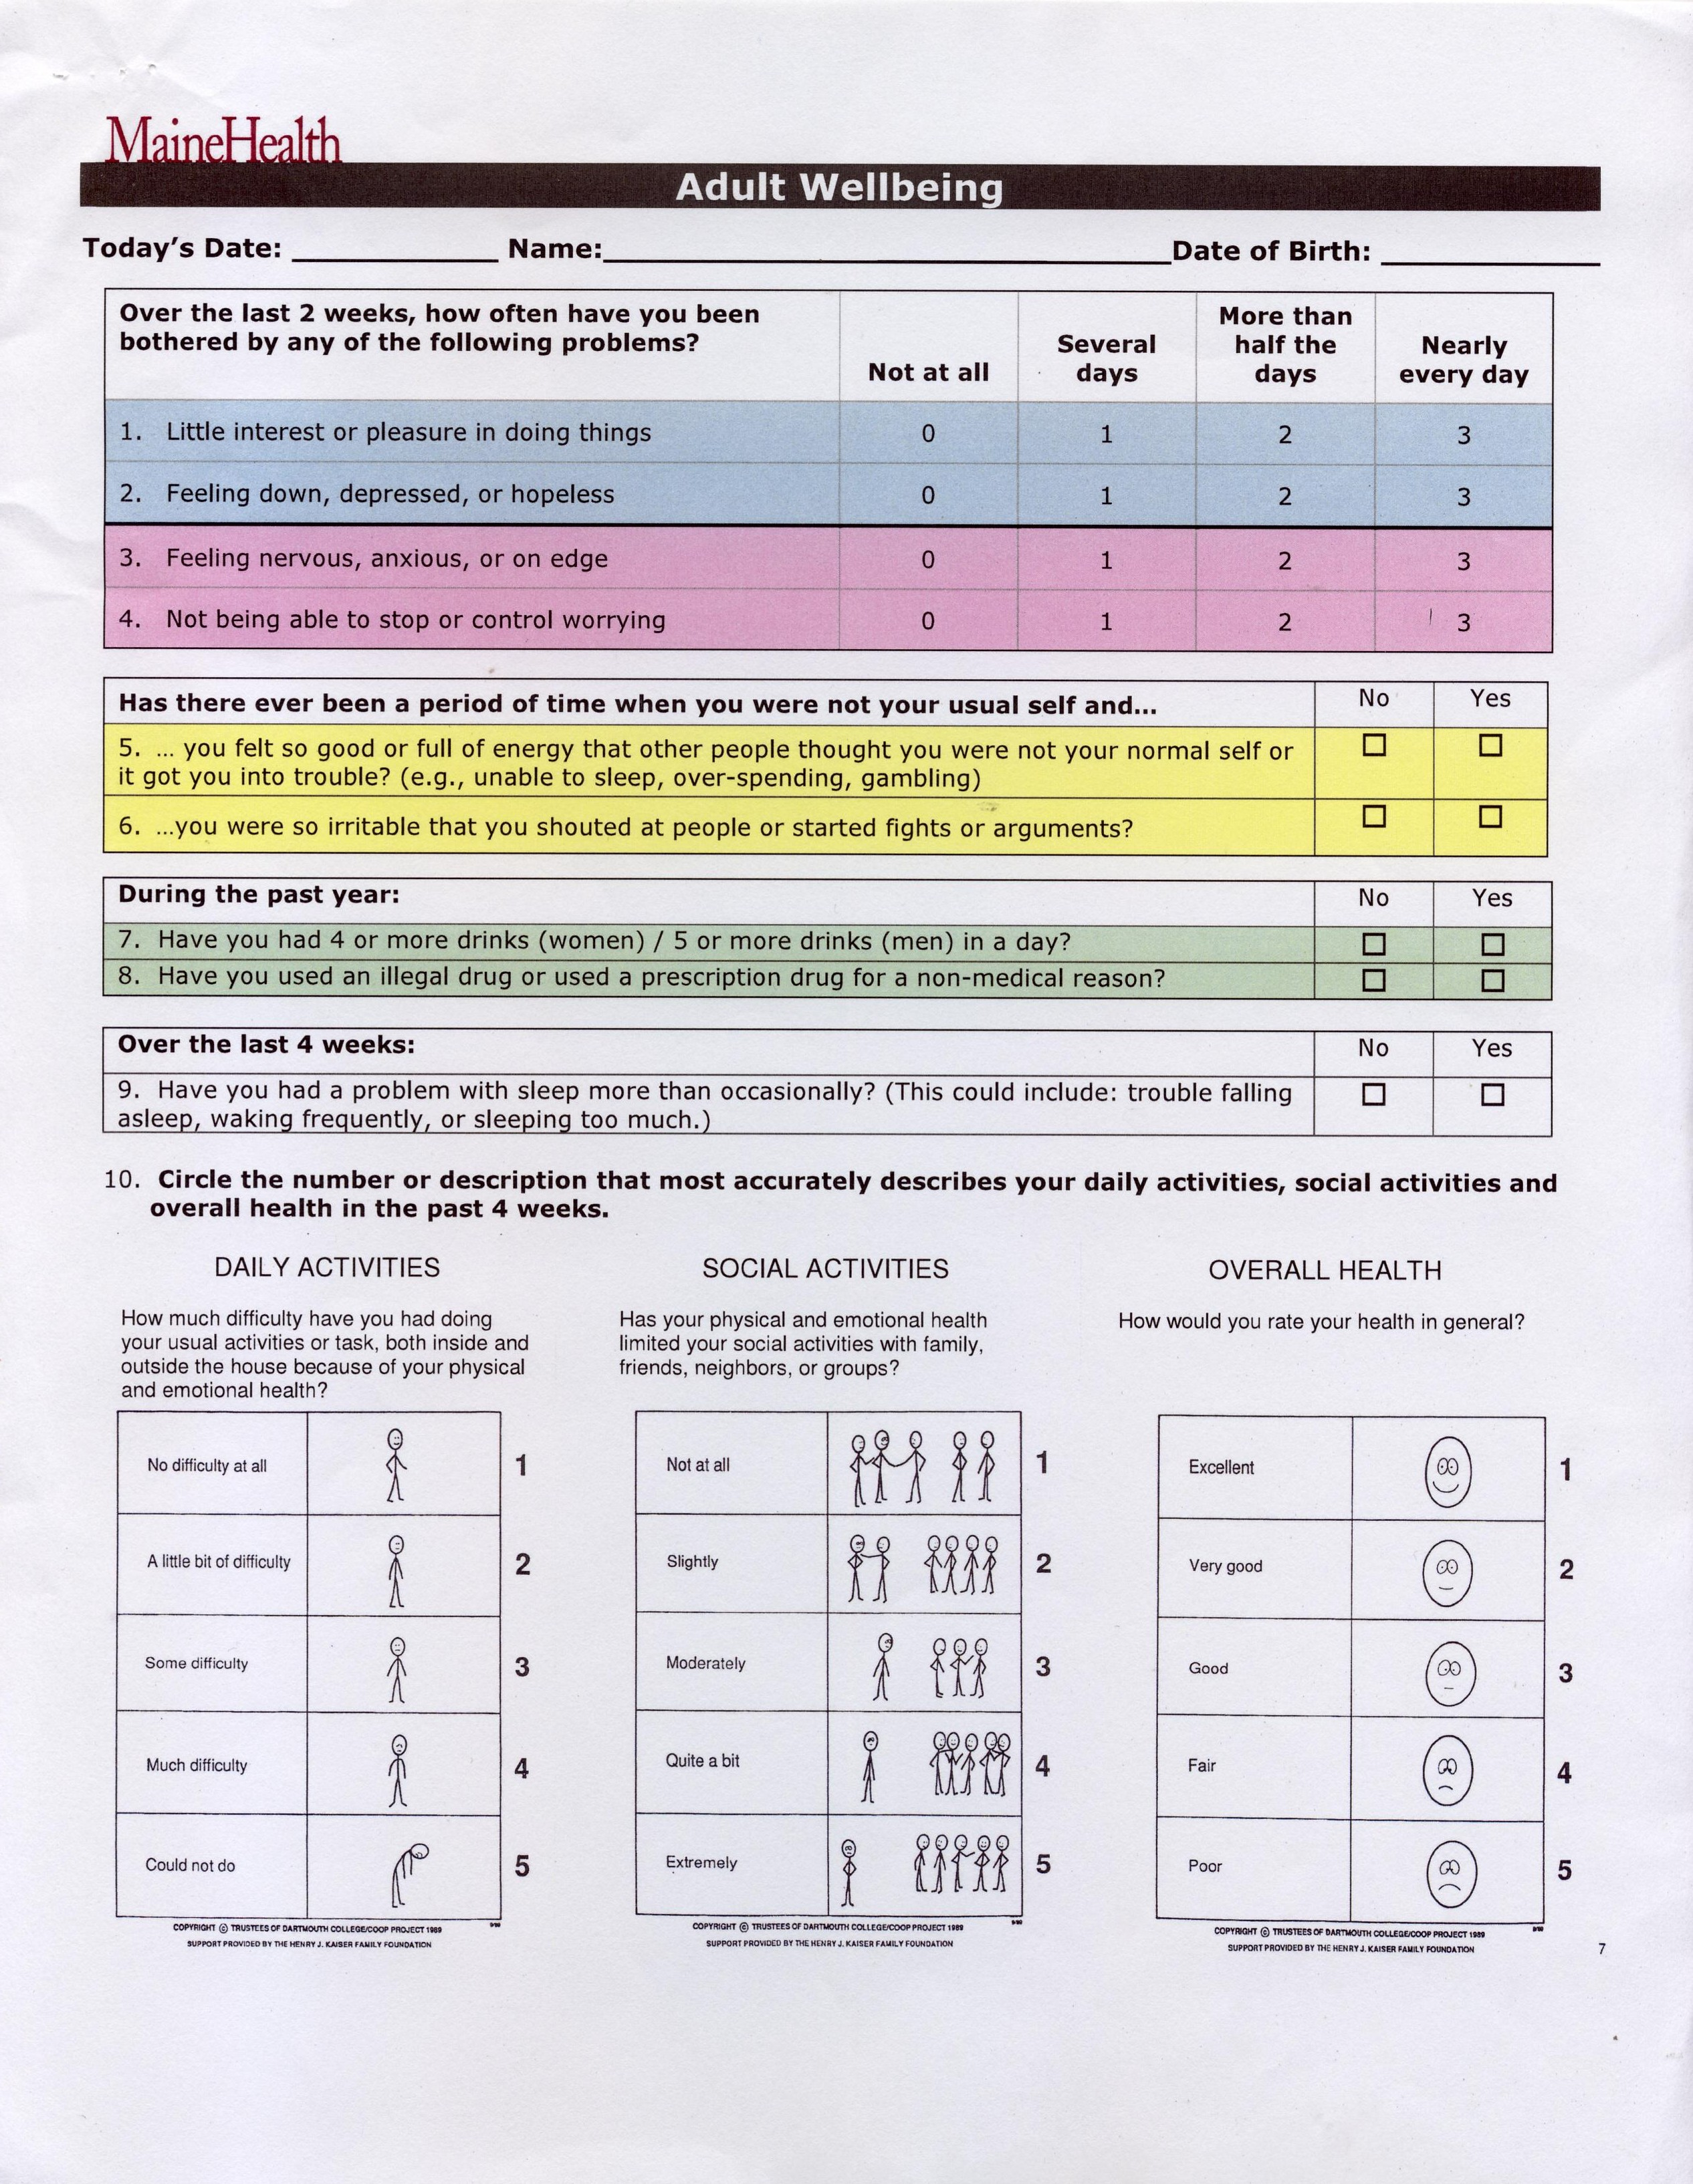 Health Assessment Questionnaire Template from www.ibhpartners.org